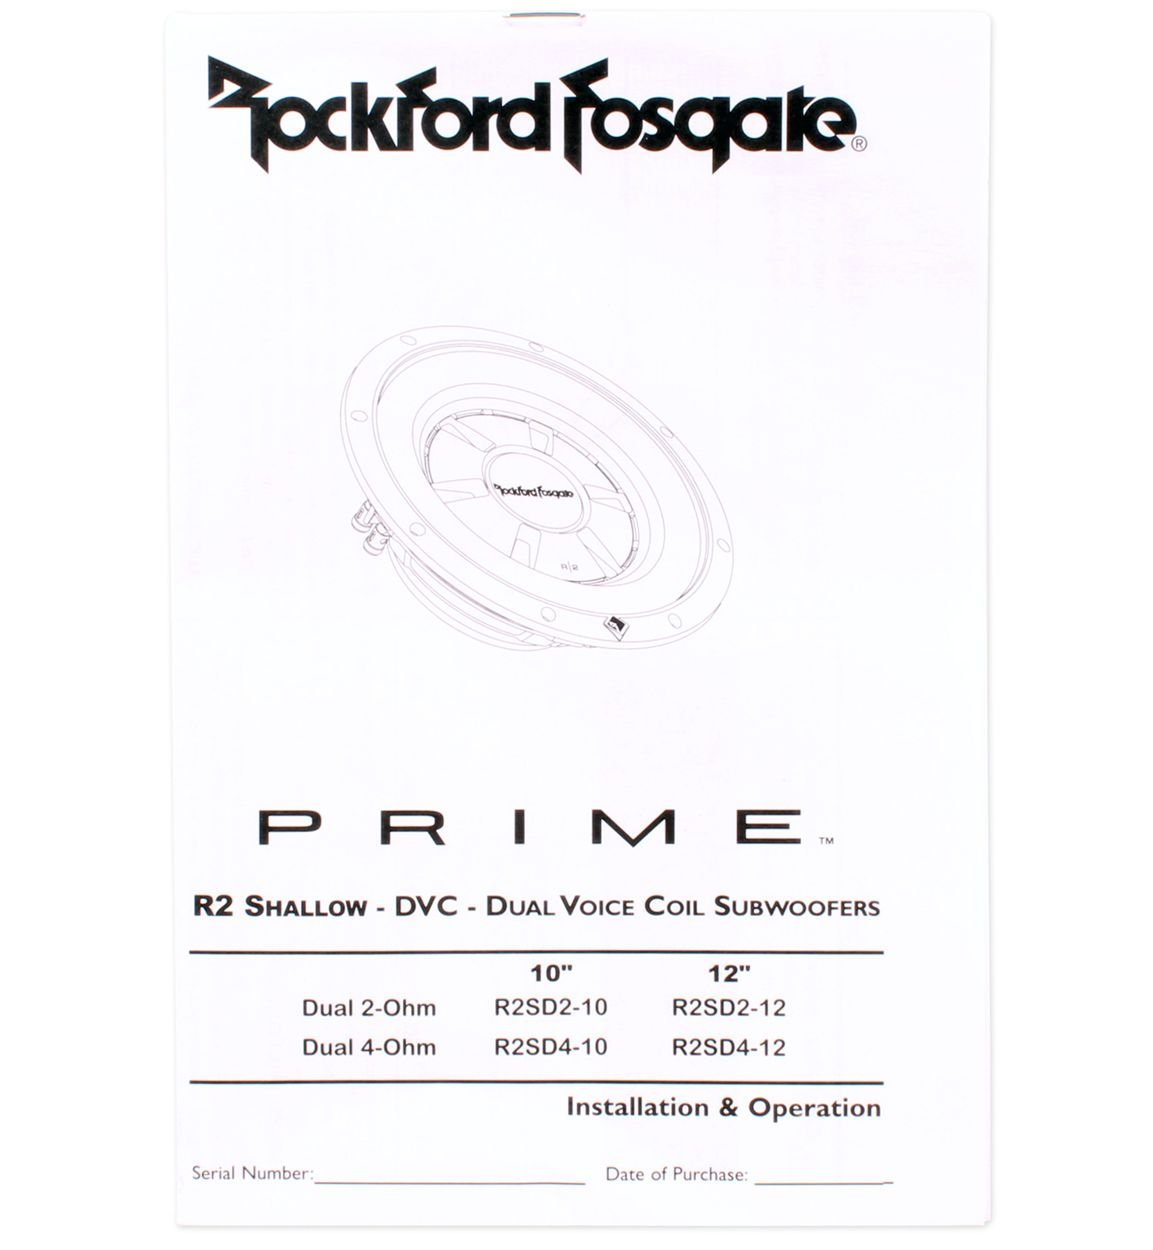 2 Rockford Fosgate R2sd4 10 800 Watt Prime R2 Dual How To Wire Voice Coil Sub 4 Ohm Shallow Subwoofers Car Electronics